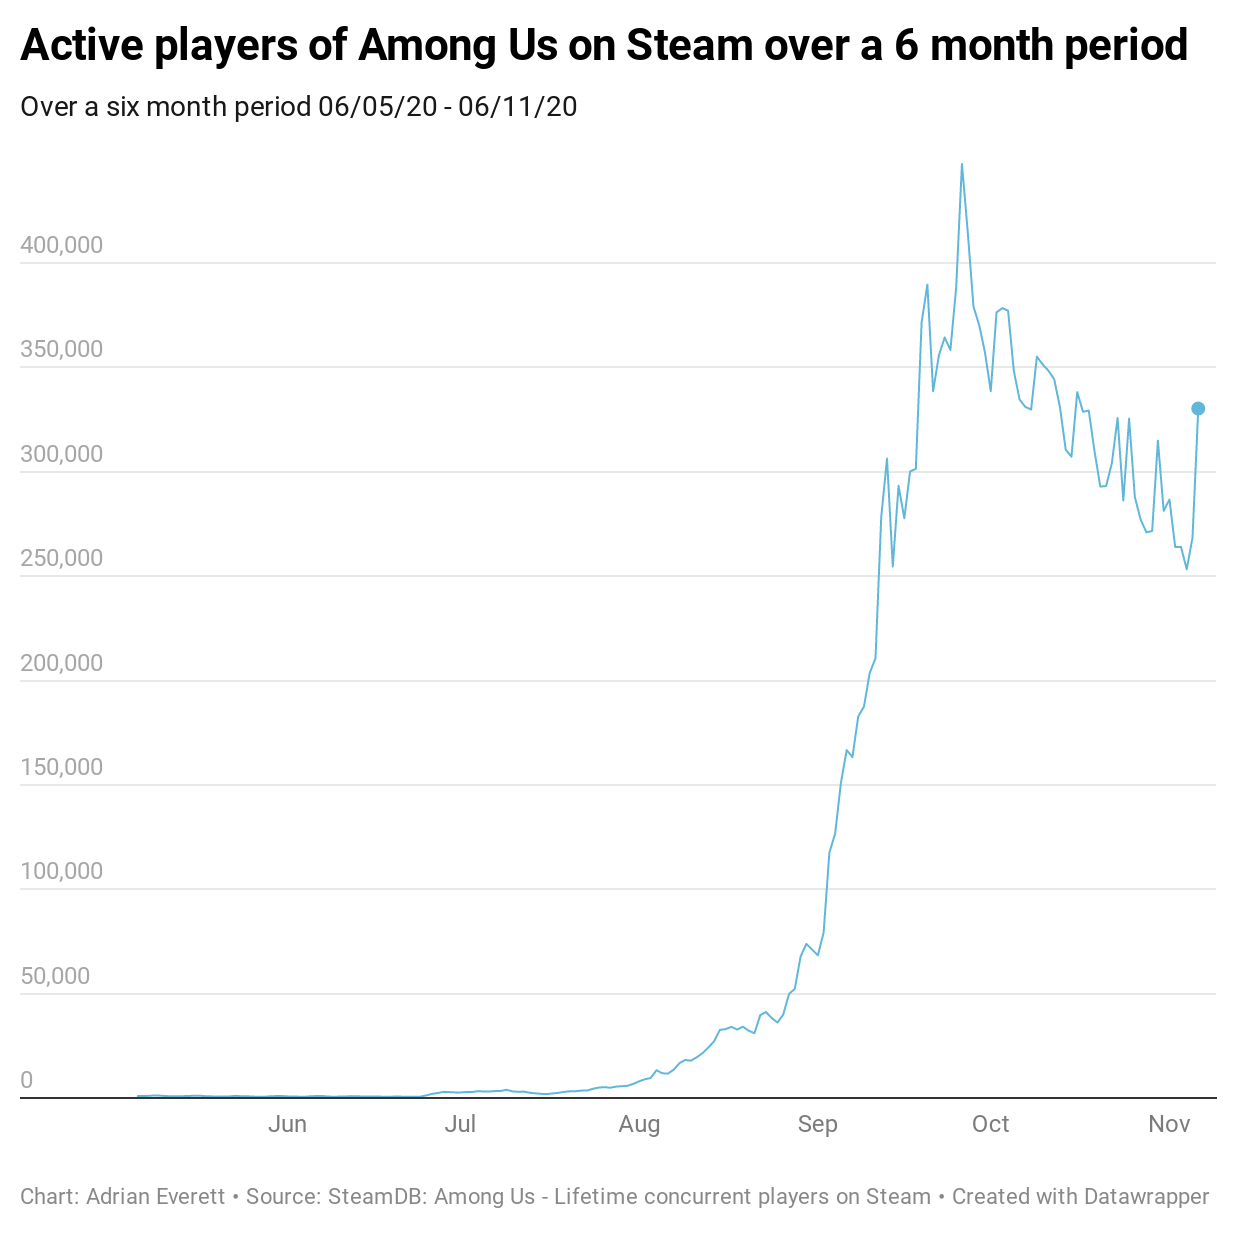 Active players of Among Us on Steam over a 6 month period